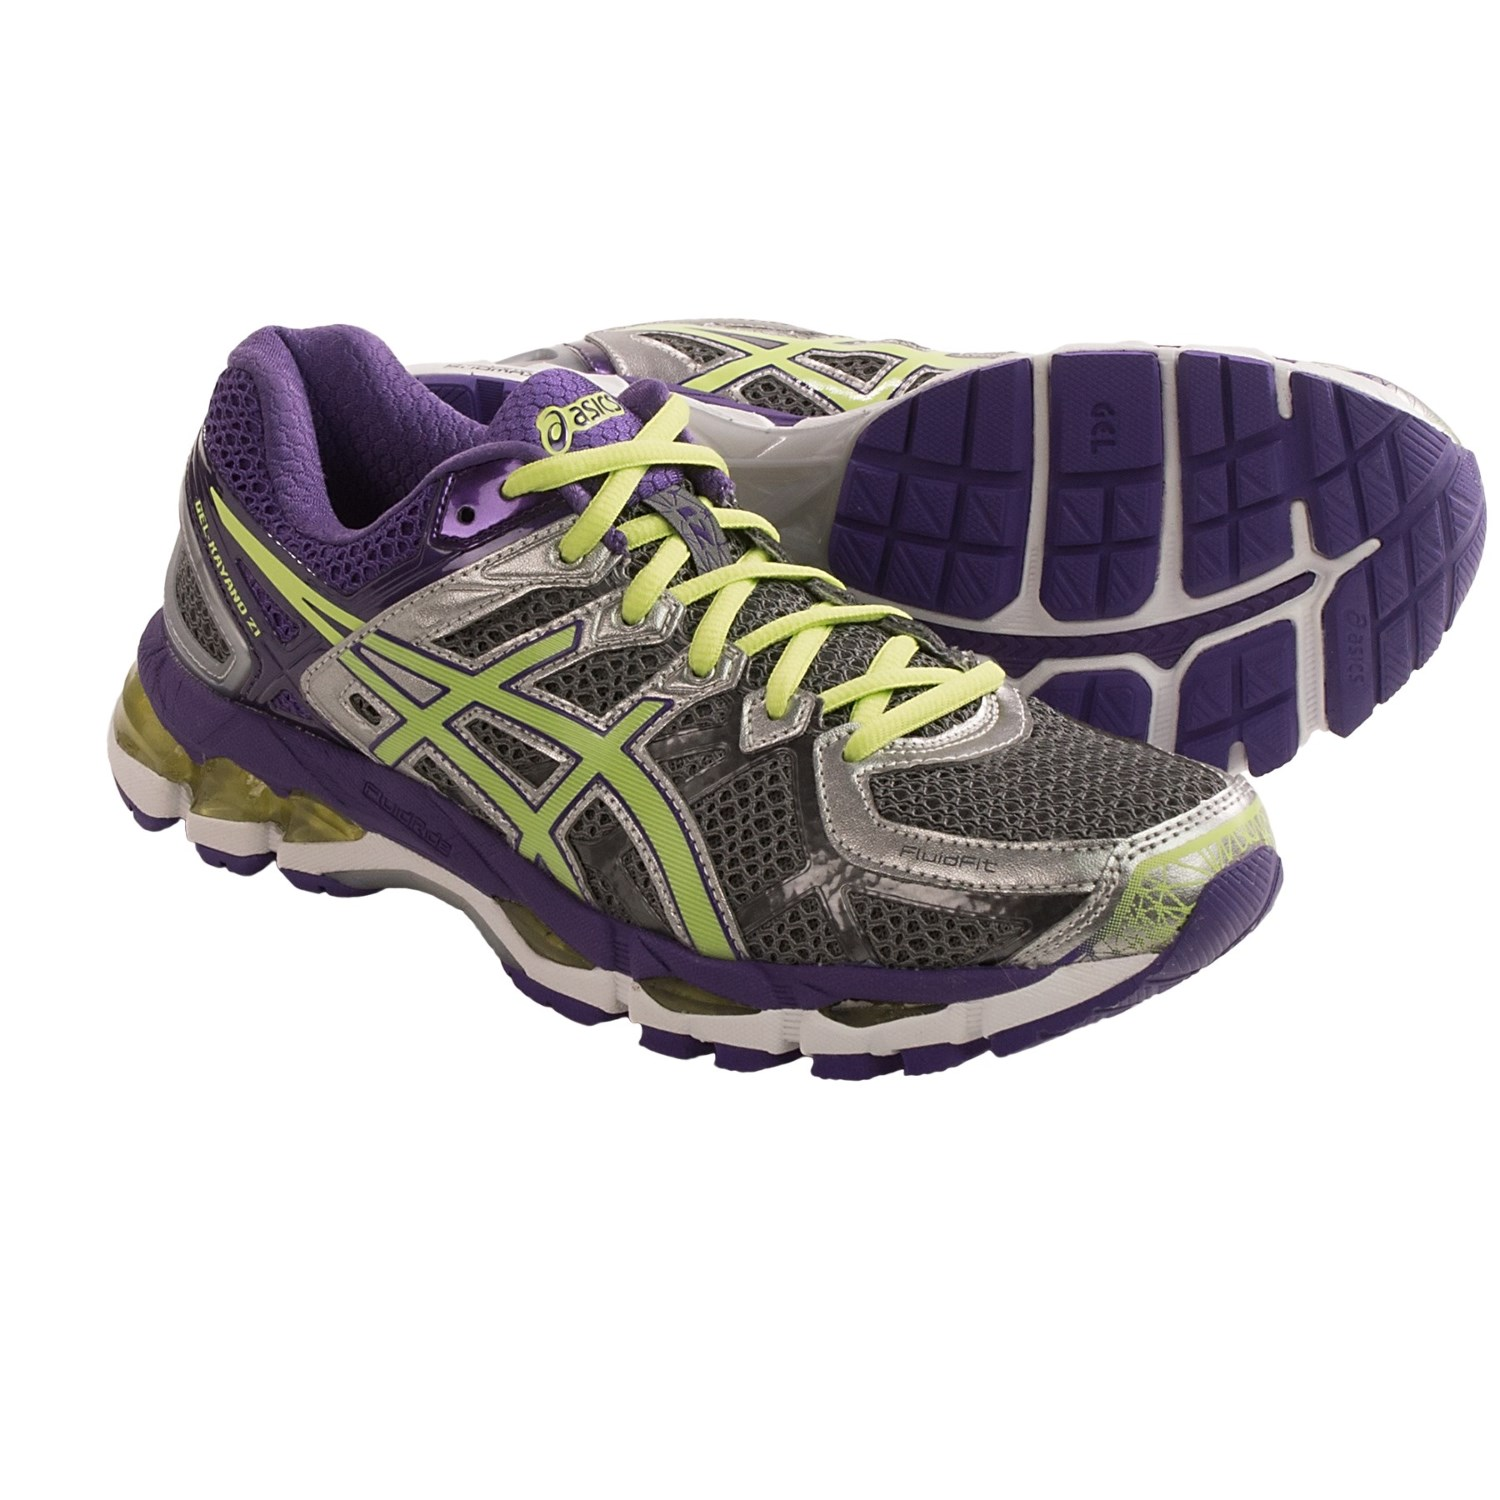 asics gel kayano 21 running shoes for women save 20. Black Bedroom Furniture Sets. Home Design Ideas